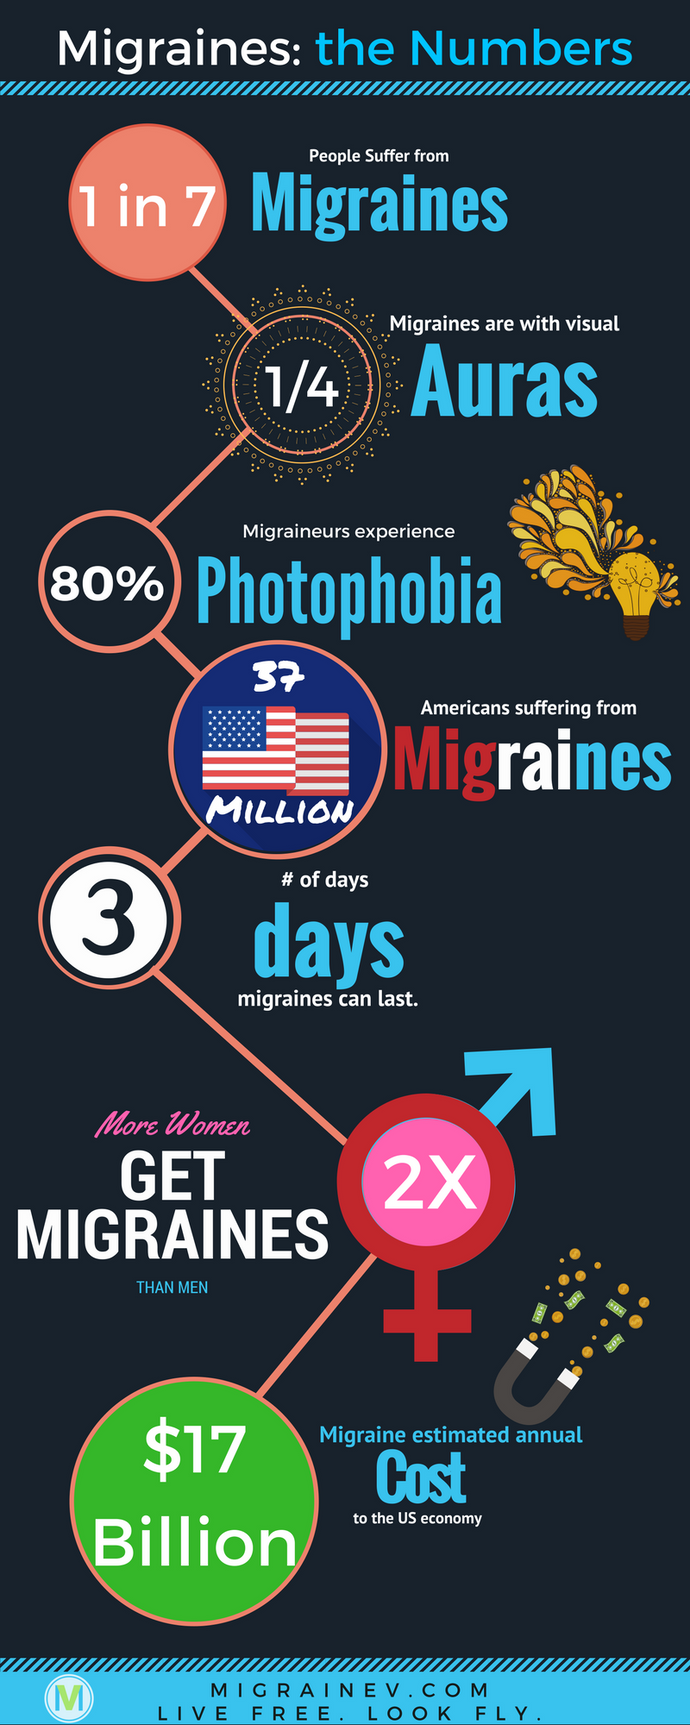 Infographic: Migraines by the Numbers